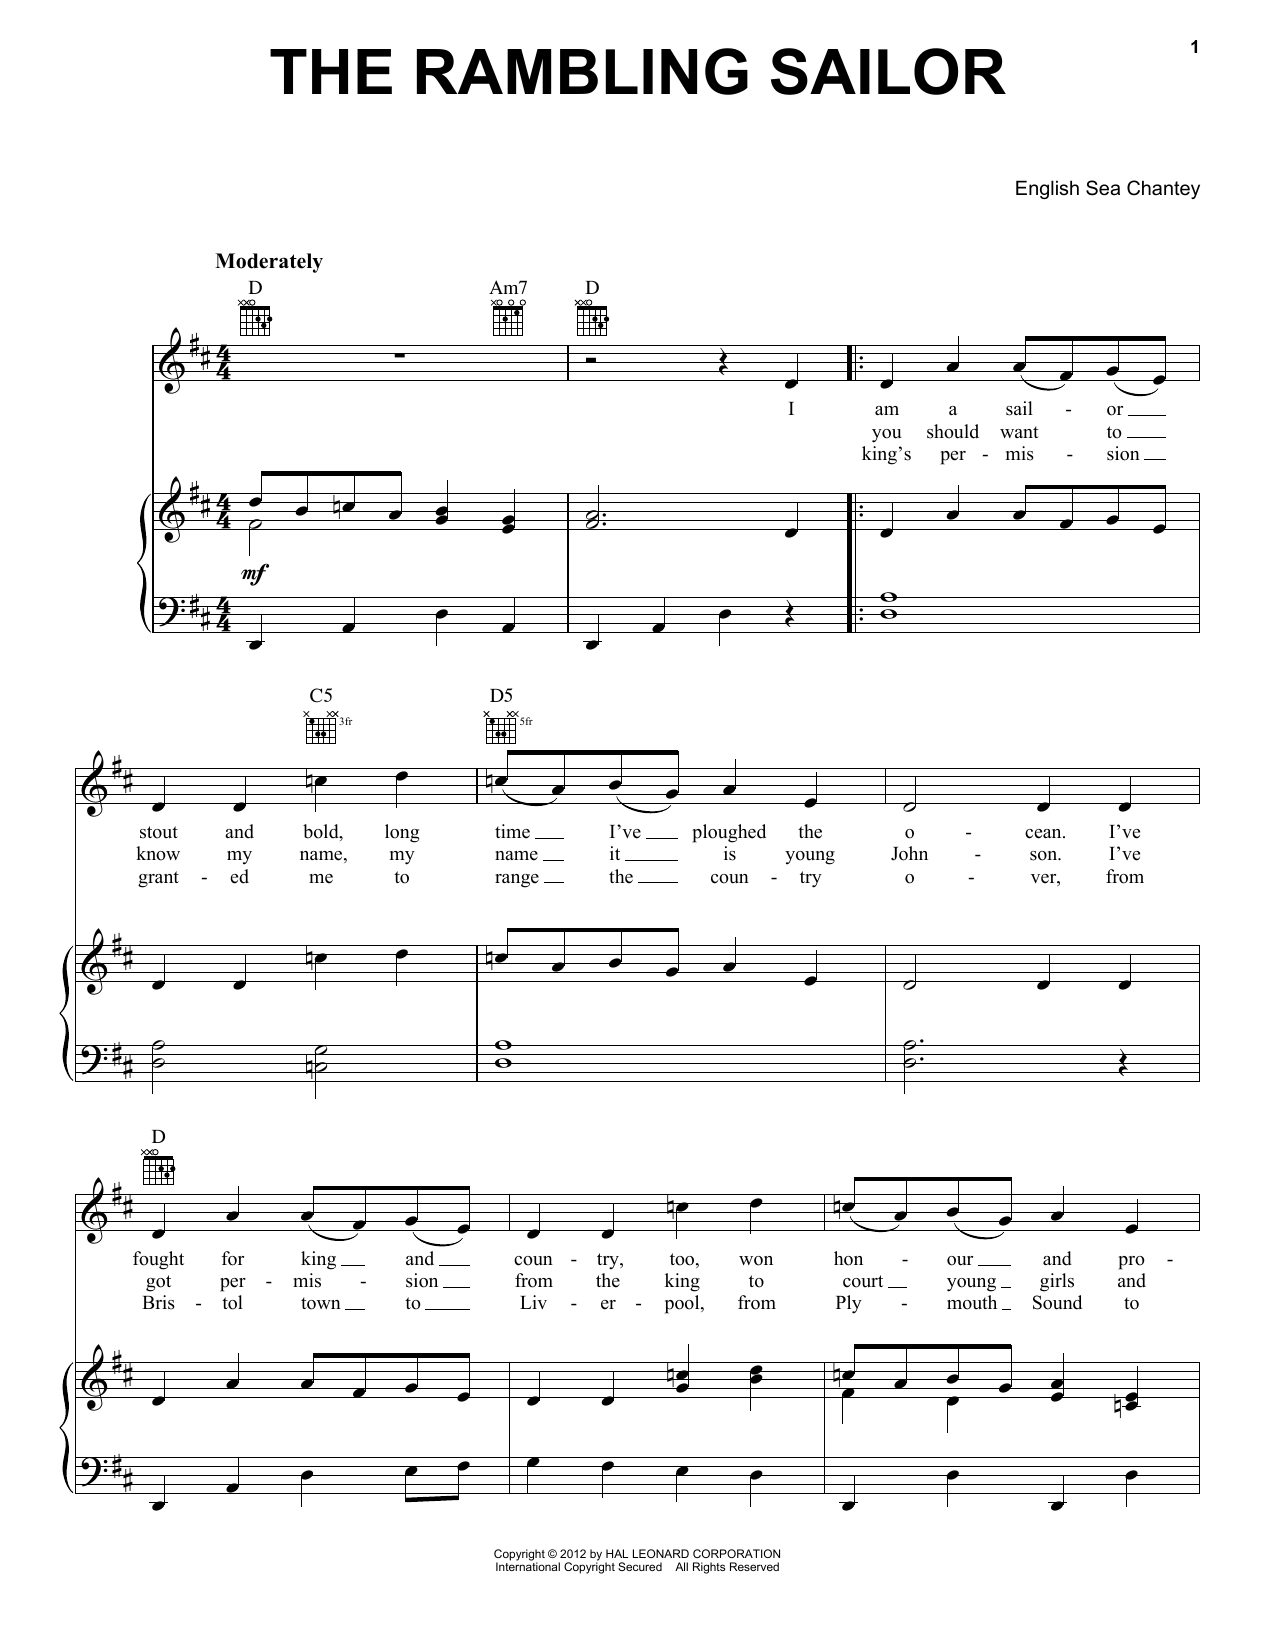 The Rambling Sailor Sheet Music